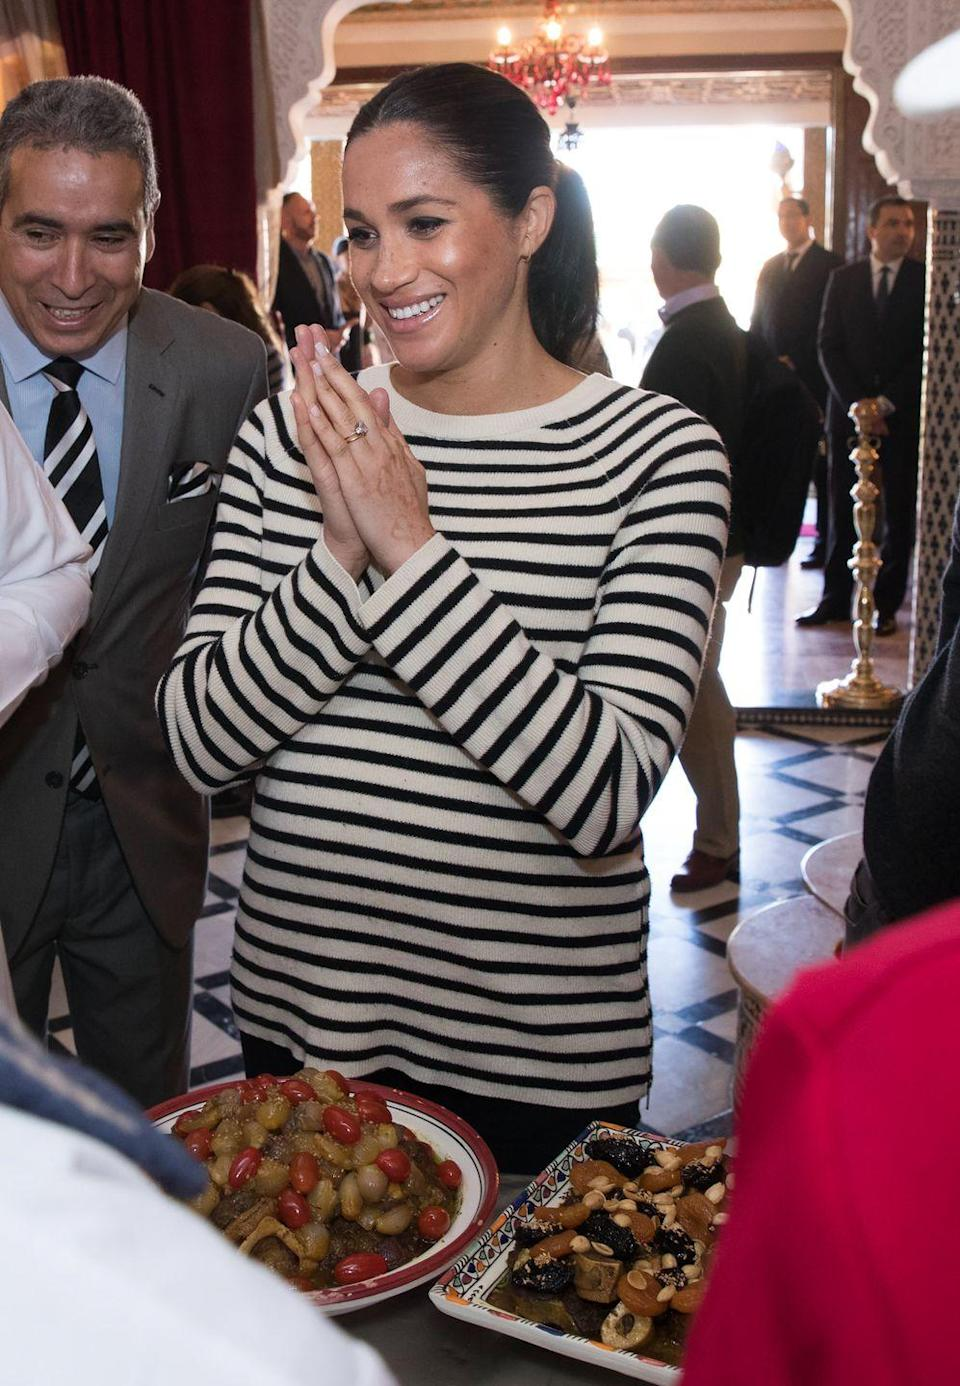 <p>And Meghan wore this classic striped top to a cooking demonstration during her and Prince Harry's royal tour of Morocco in 2019. </p>